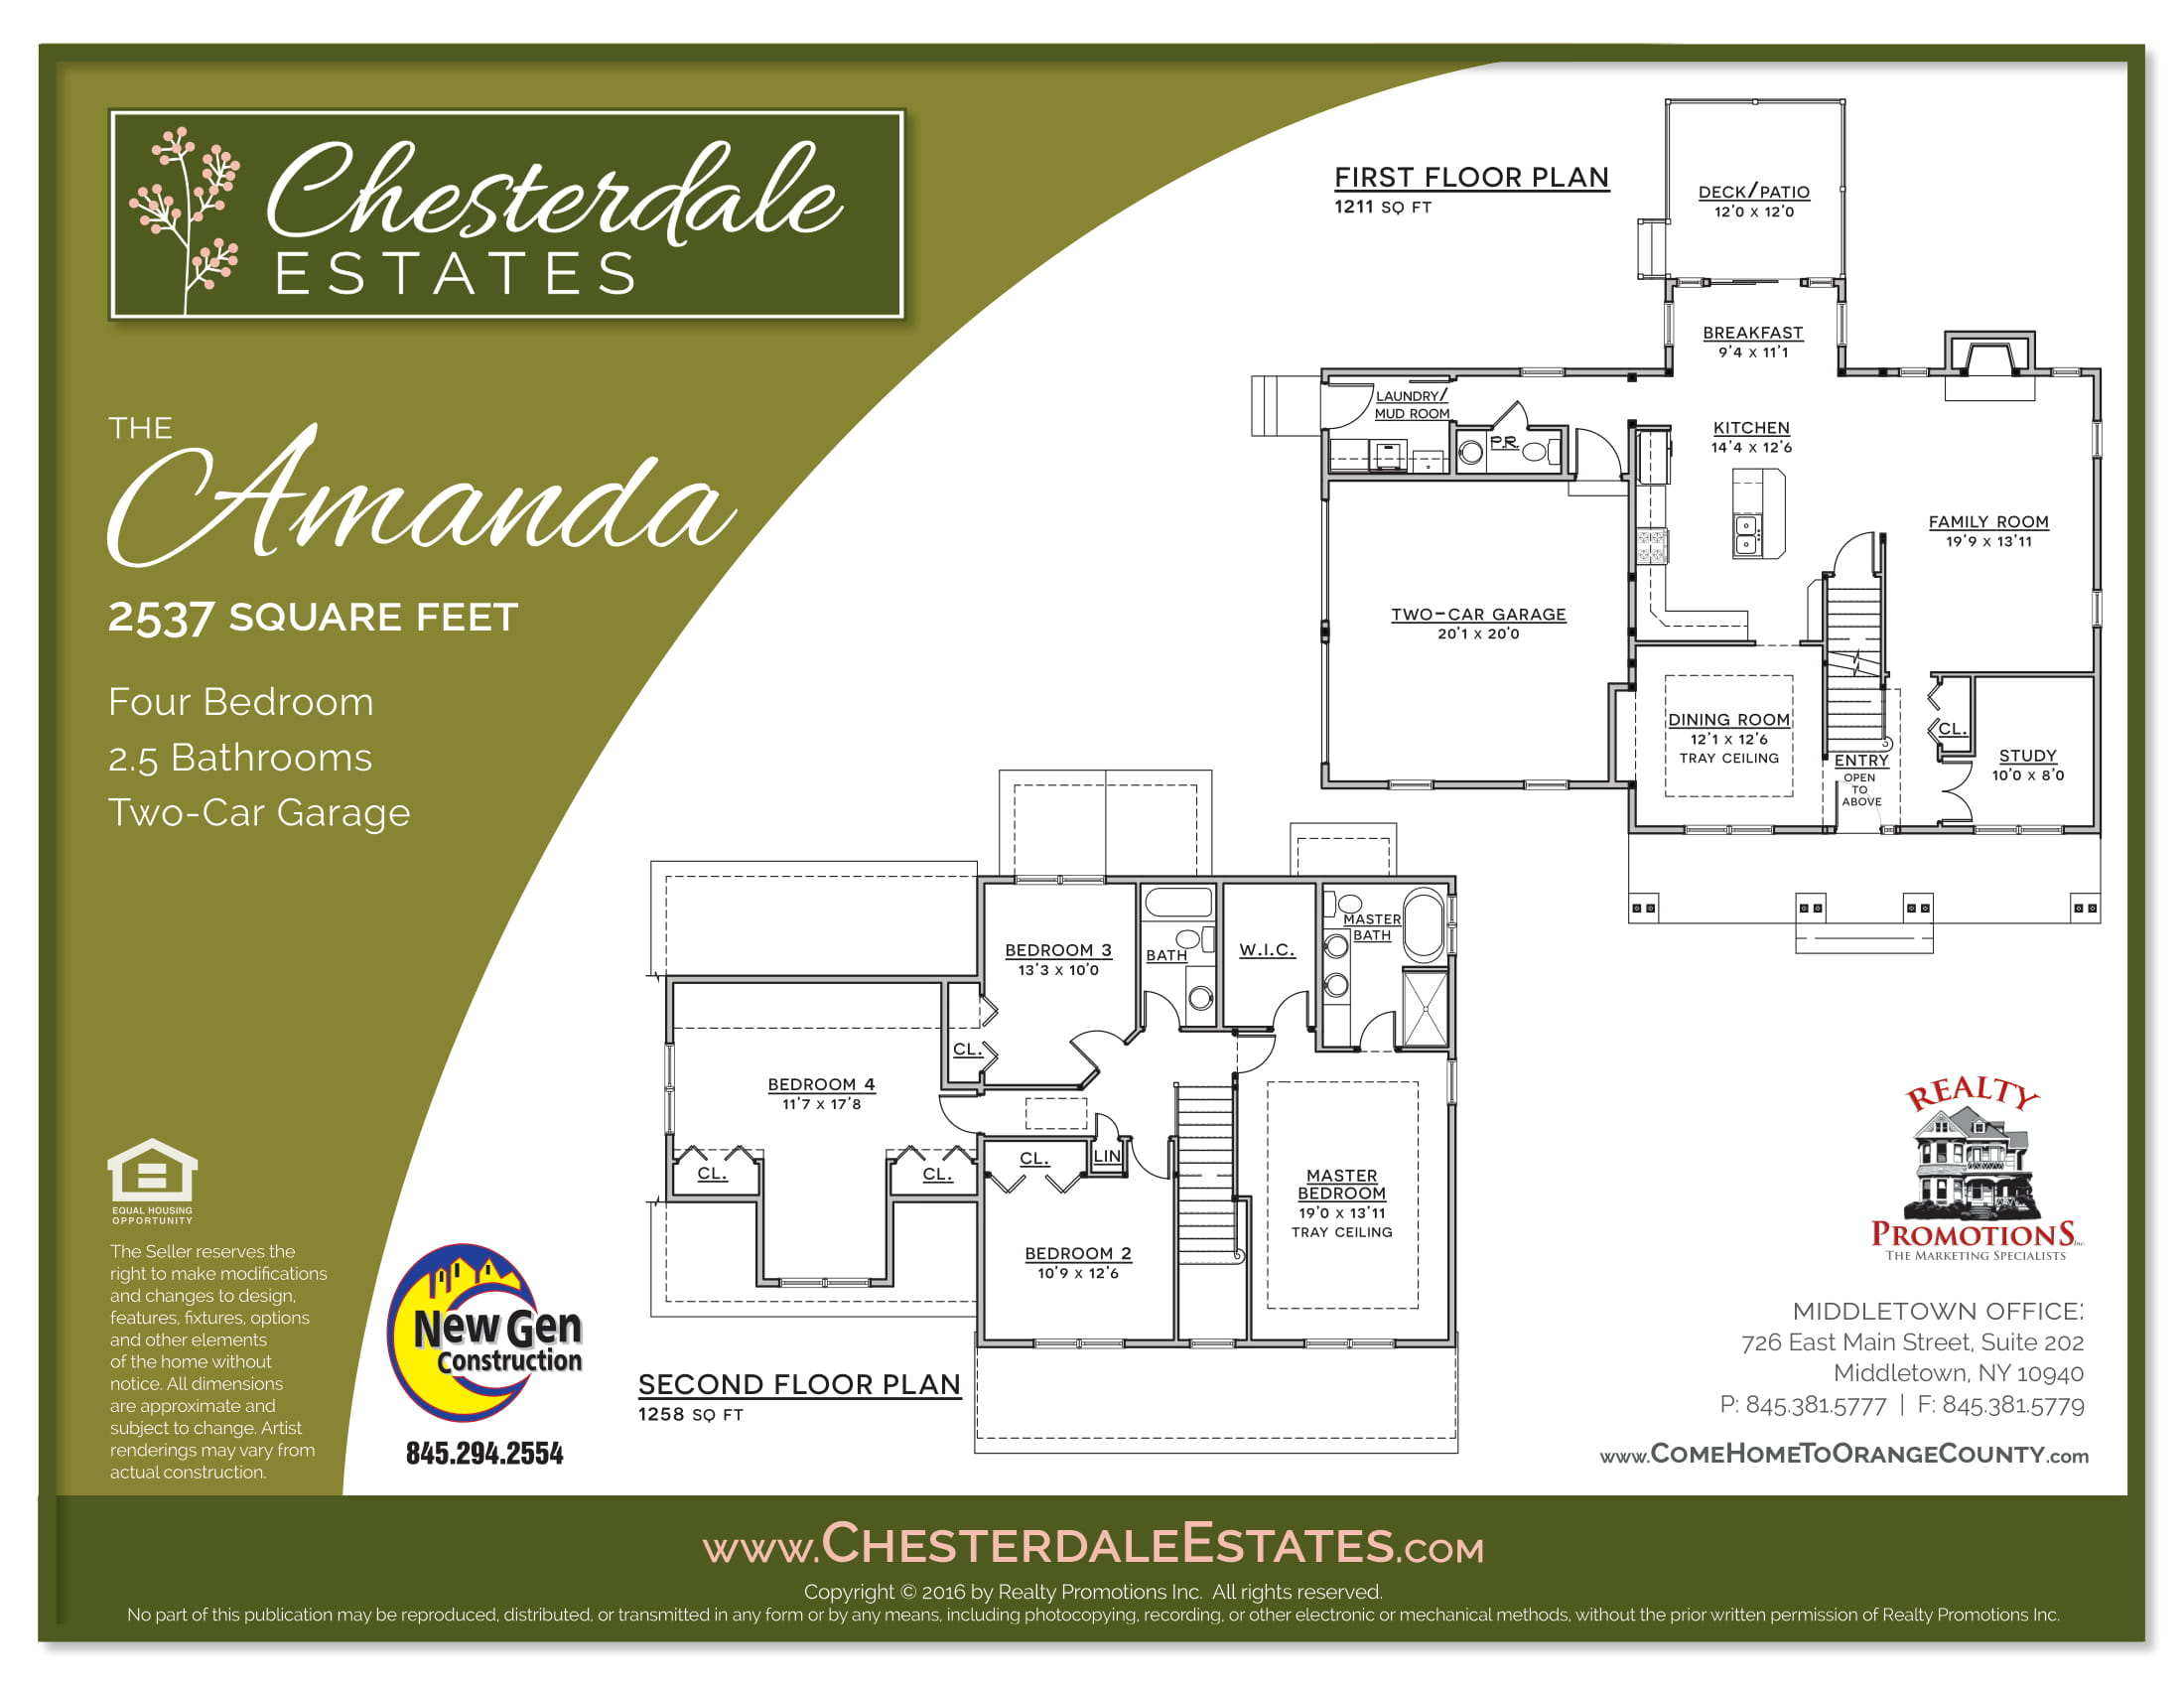 Christopher Ogden Middletown Ny Real Estate Theamanda Chesterdale 2